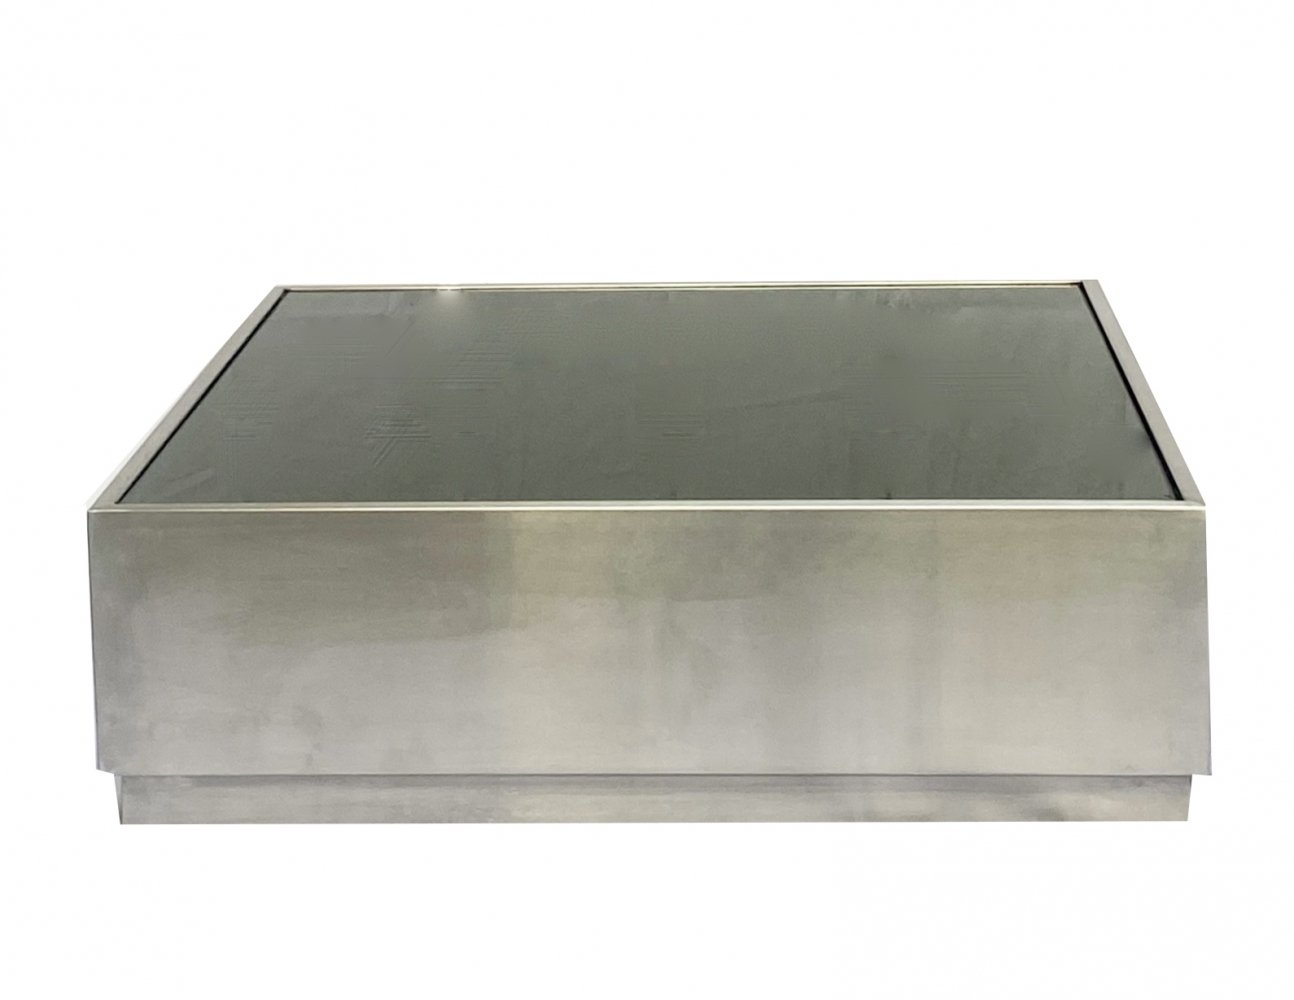 Coffee table in stainless steel & green glass, 1970s